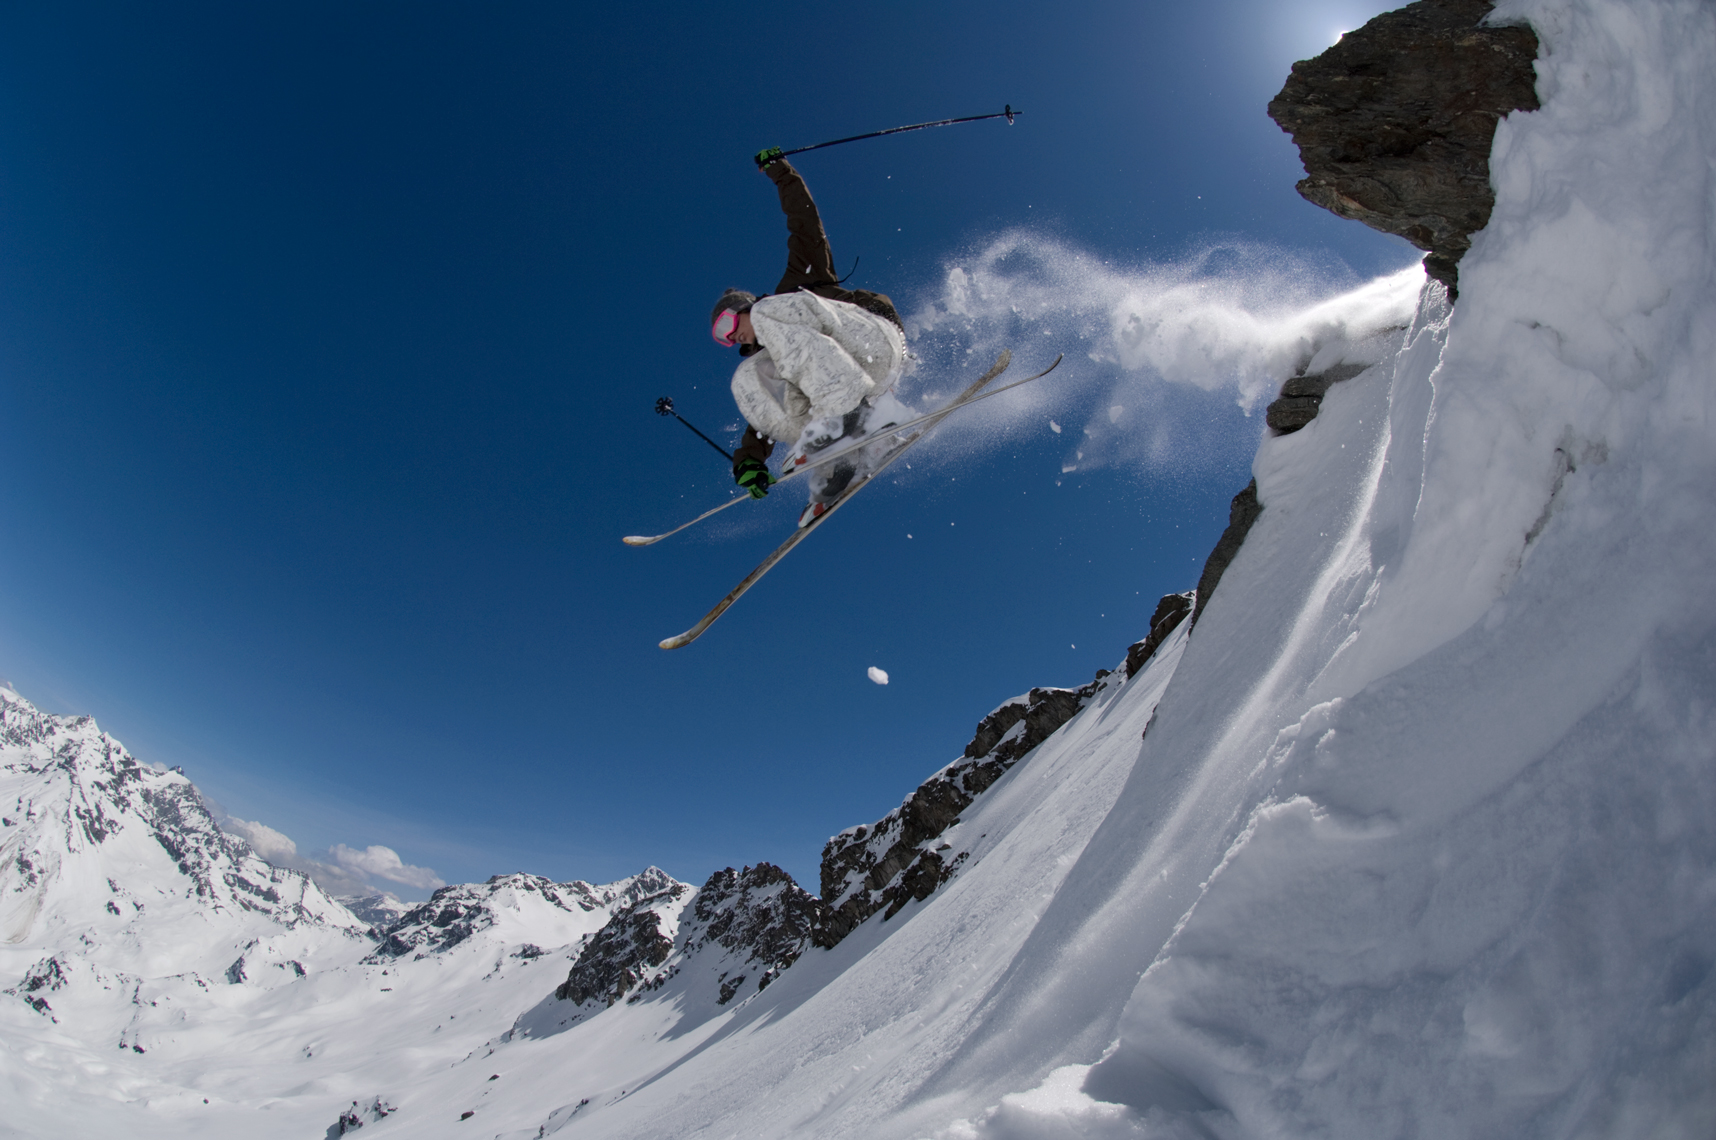 Jon Wyatt Photography - Skier jumping off rock, Sainte Foy Tarentaise, France